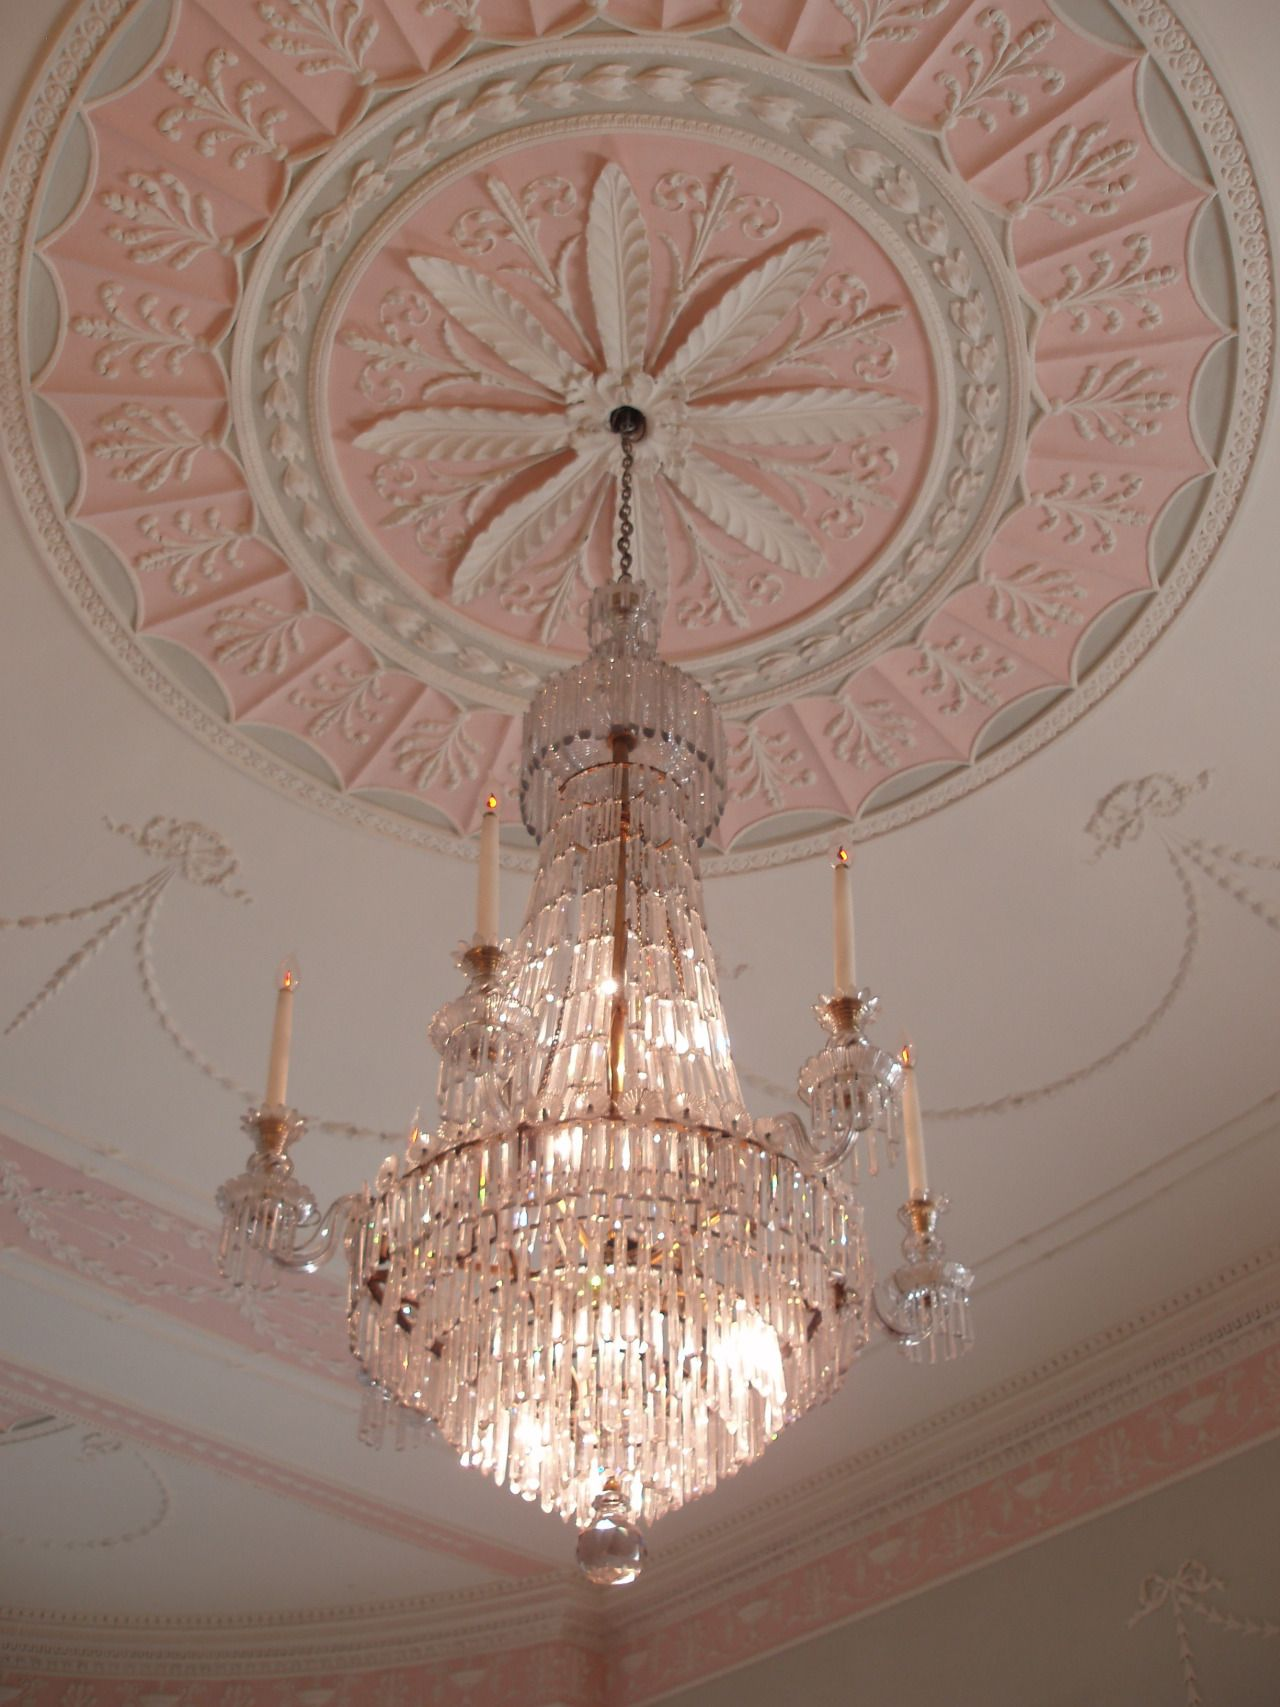 ignite westinghouse patrofiloclub show the chandelier medallion luxury light ceiling fresh of home depot